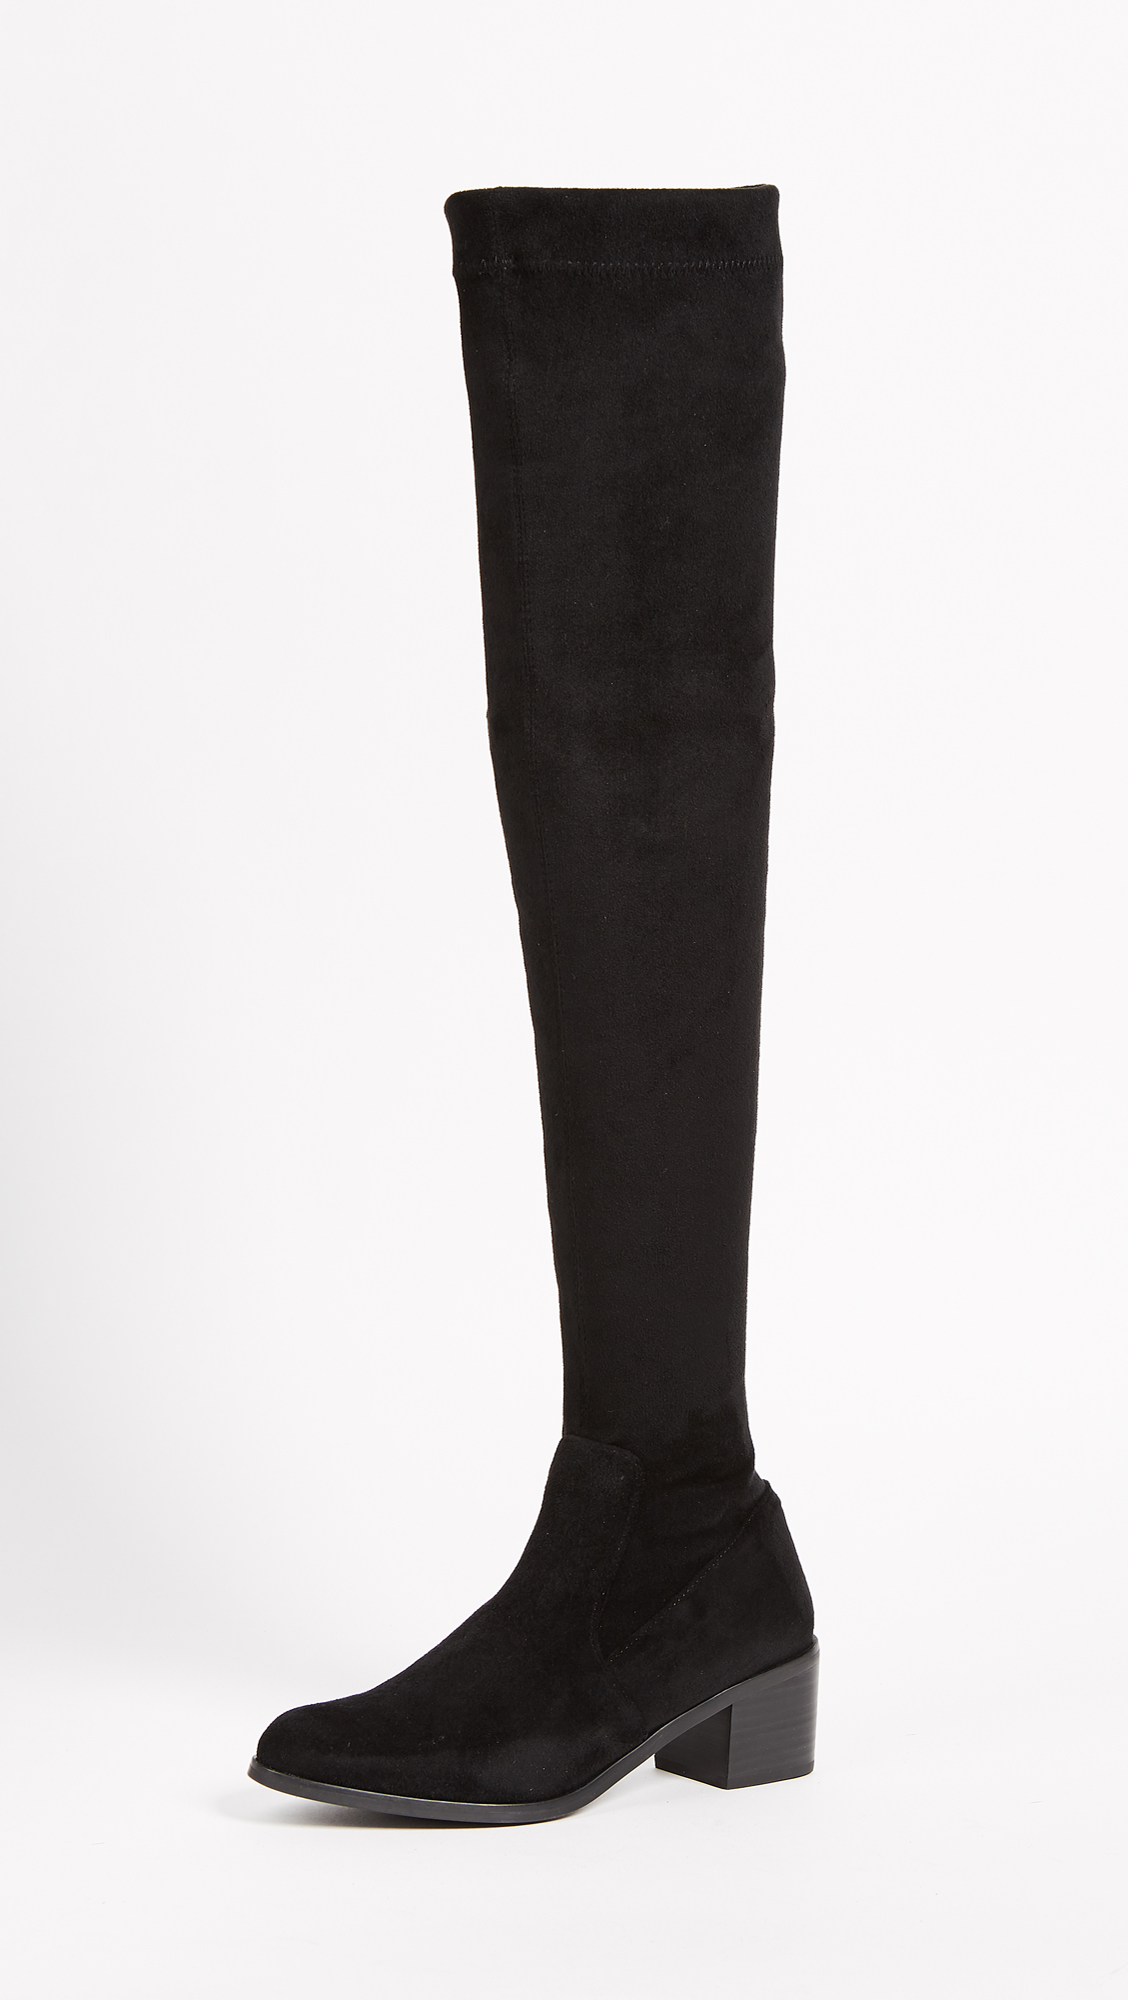 Sol Sana Bianca Over the Knee Boots - Black